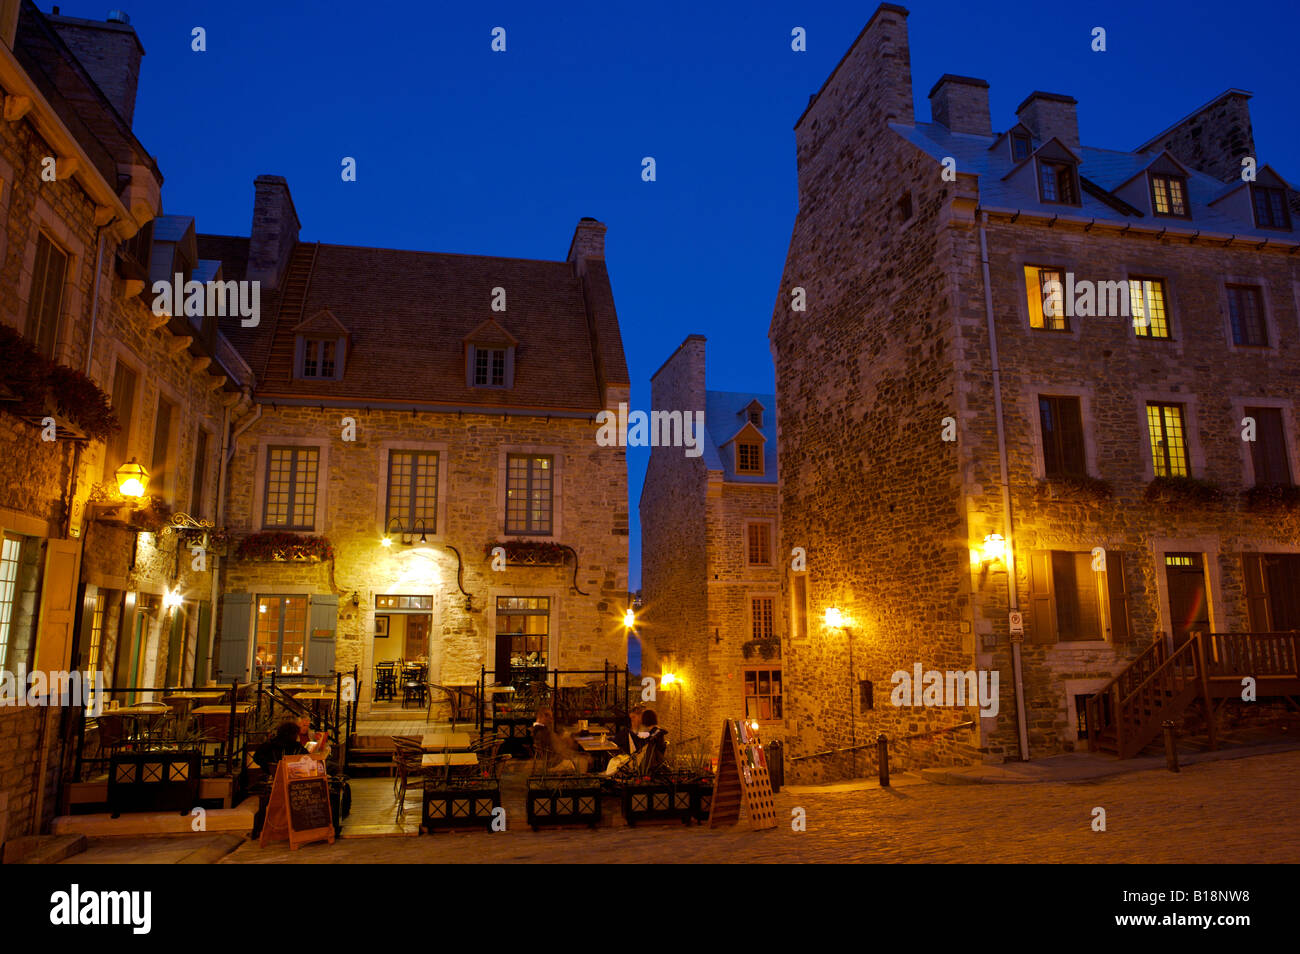 Buildings in Place-Royale during blue hour in Old Quebec, Quebec City, Quebec, Canada. UNESCO World Heritage Site. - Stock Image